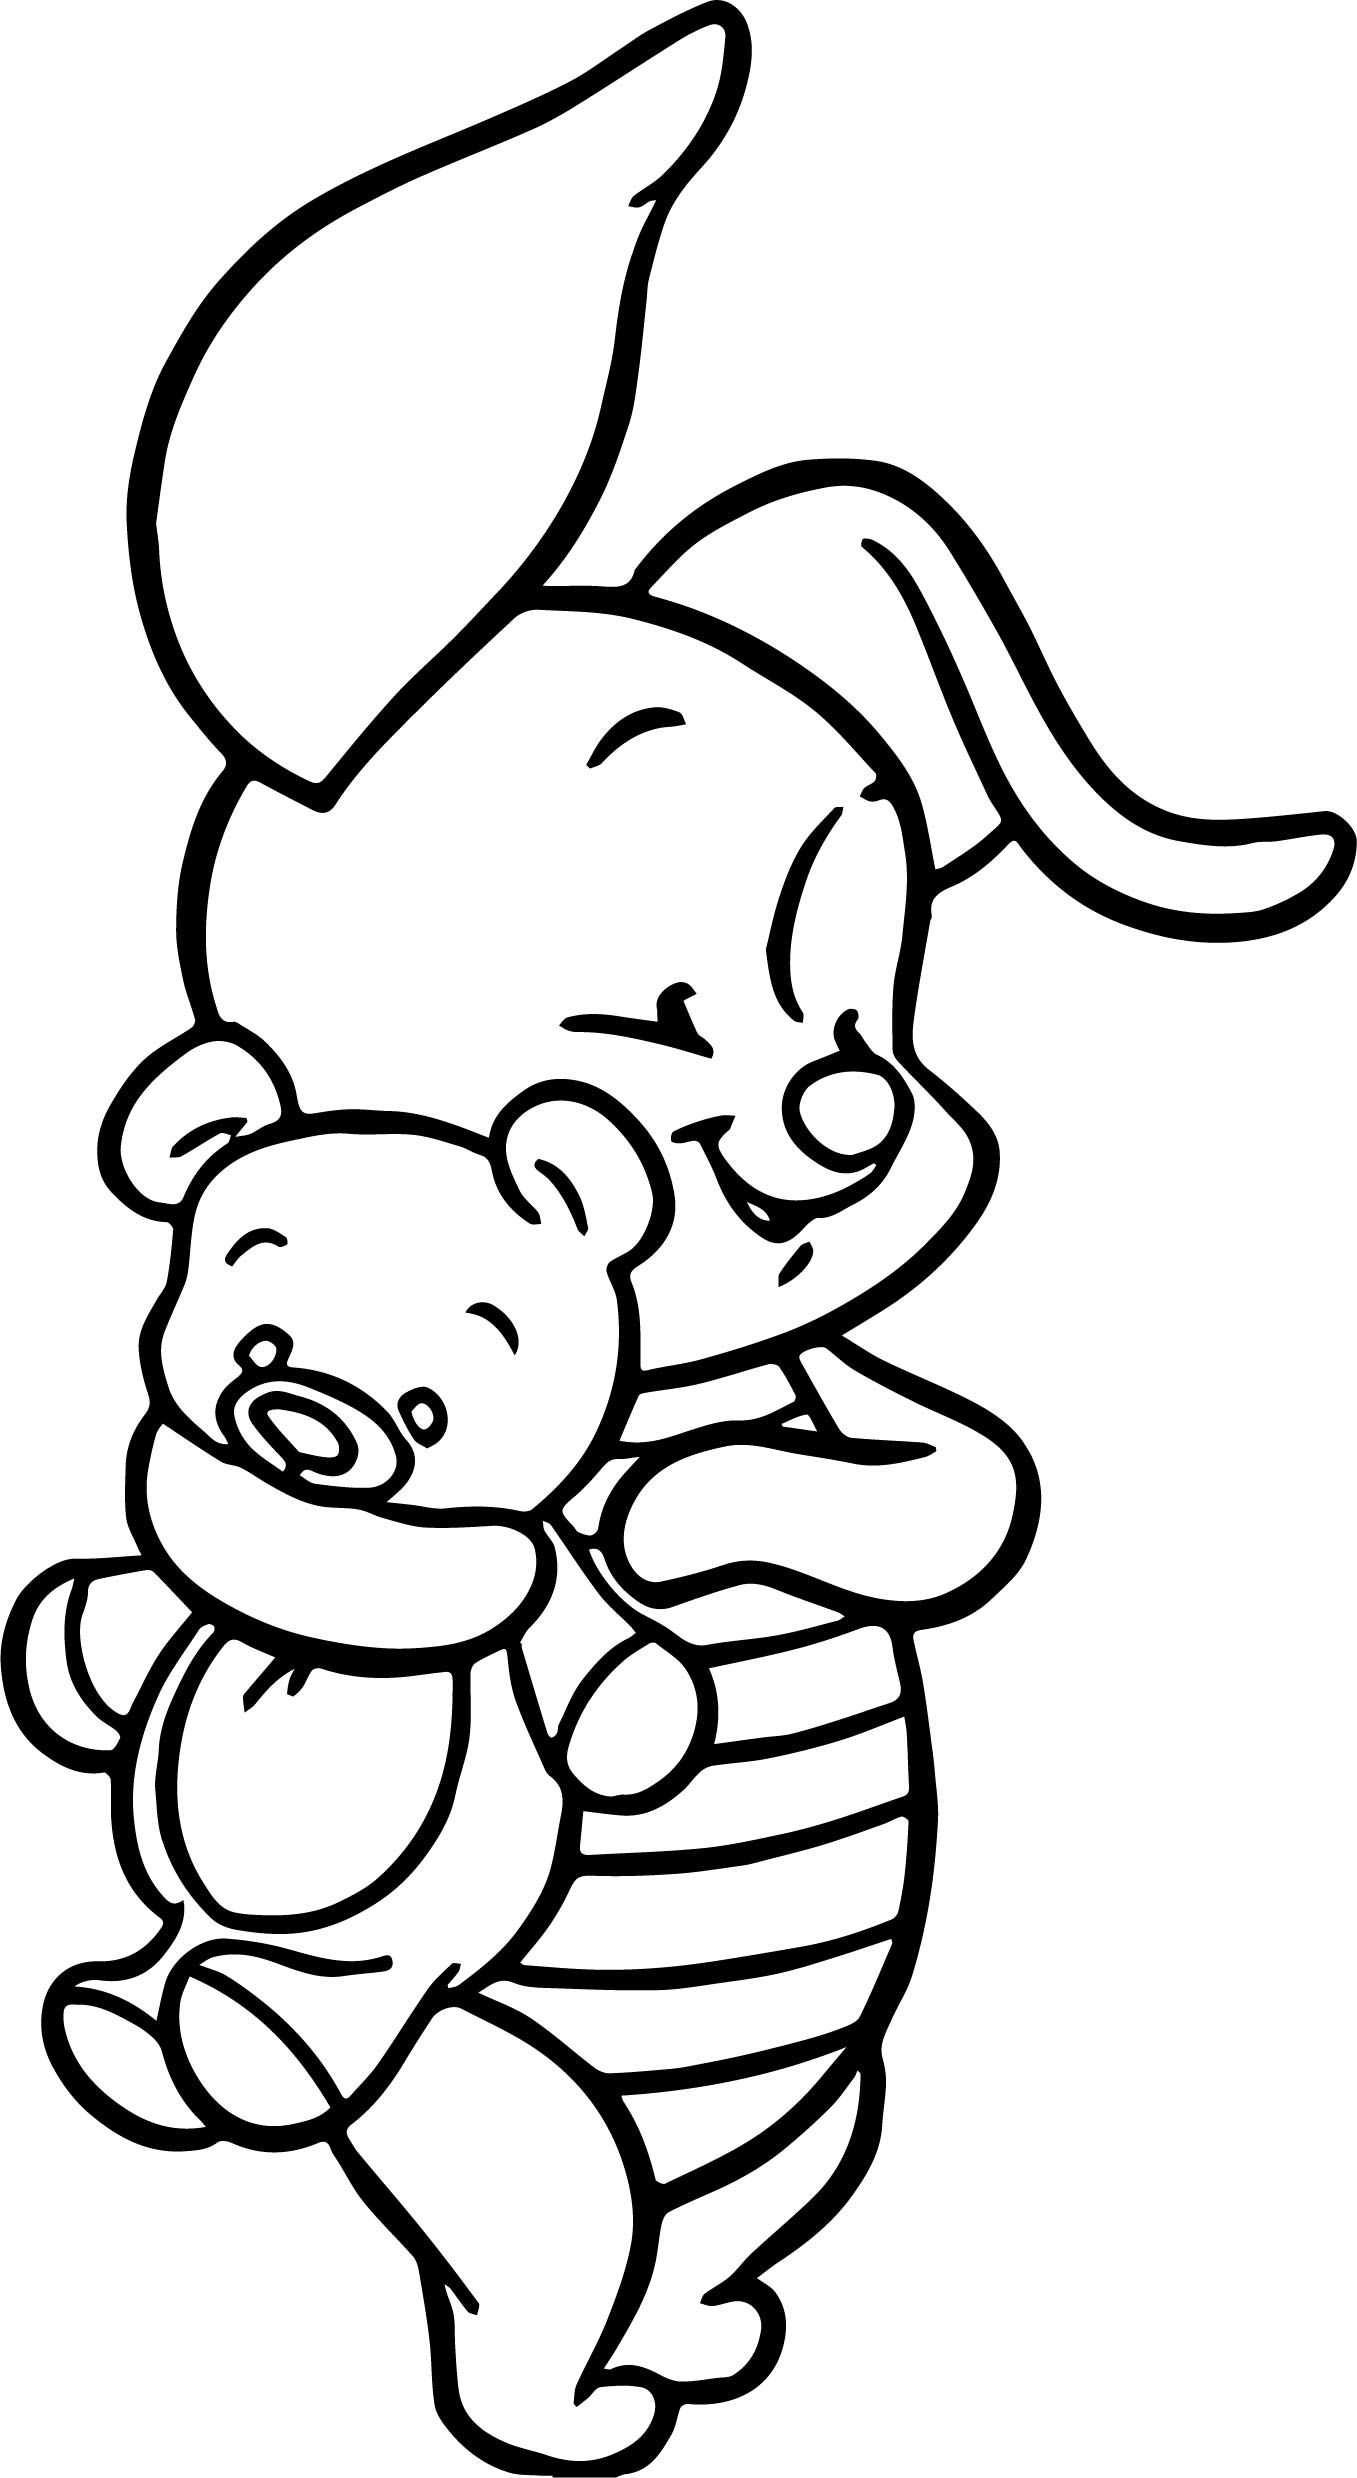 Baby Piglet Coloring Page Baby Coloring Pages Cartoon Coloring Pages Disney Coloring Pages